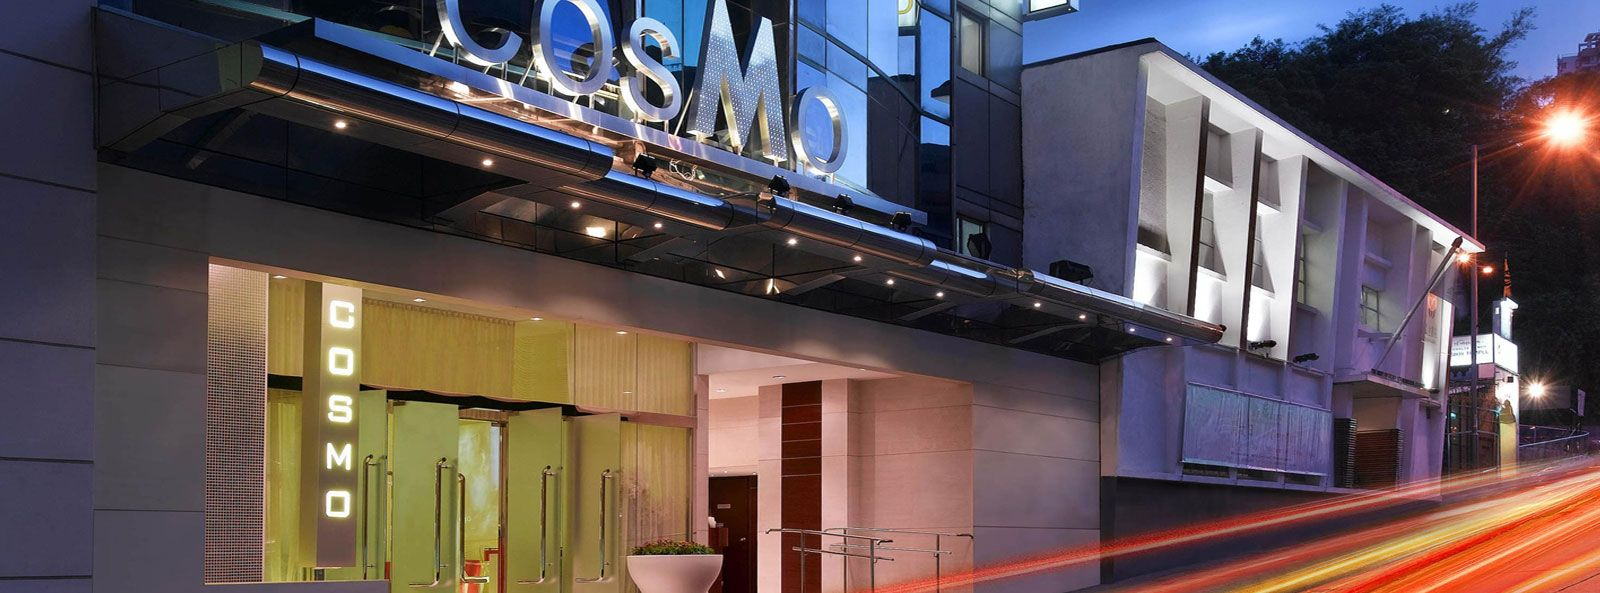 Cosmo Hotel Awards and Accolades